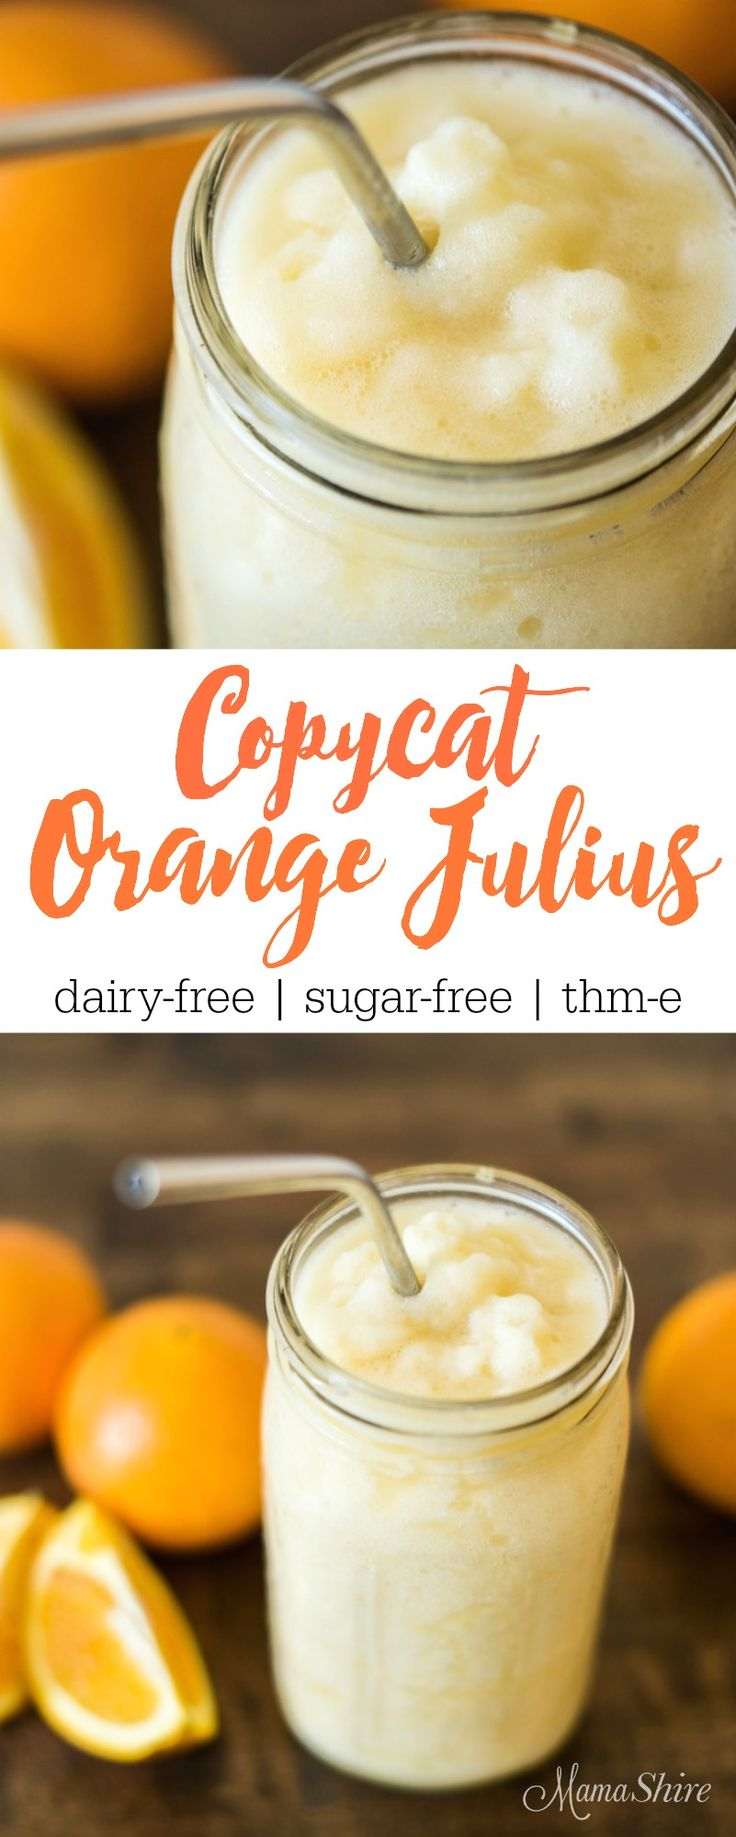 Try this delicious and healthy Copycat Orange Julius that's dairy free! It's super easy to make and so refreshing! Gluten-free, Sugar-free, THM-E